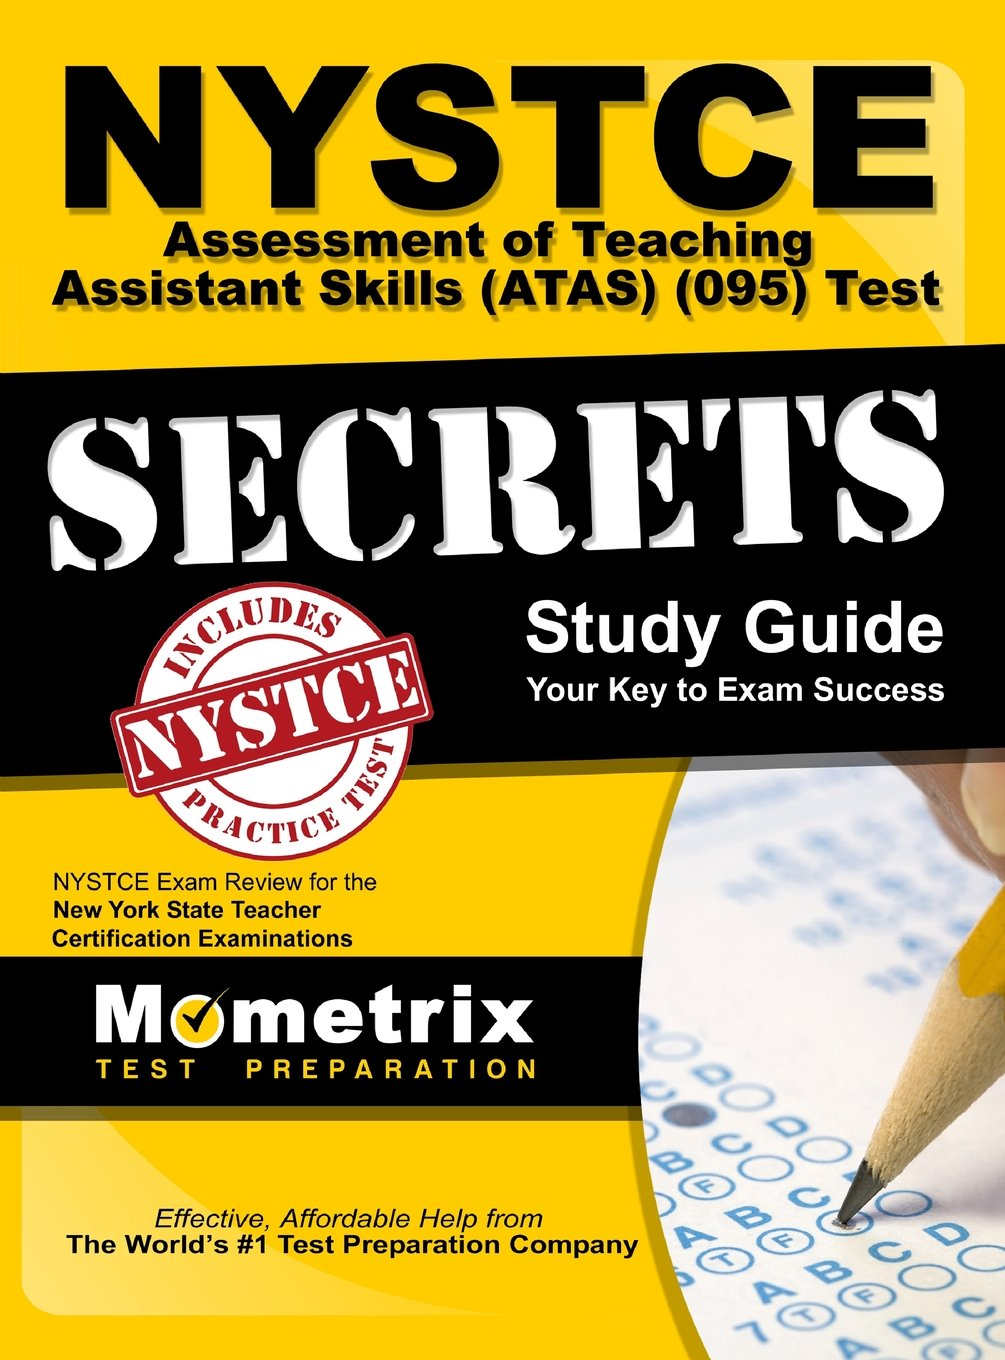 Amazon Buy Nystce Assessment Of Teaching Assistant Skills Atas